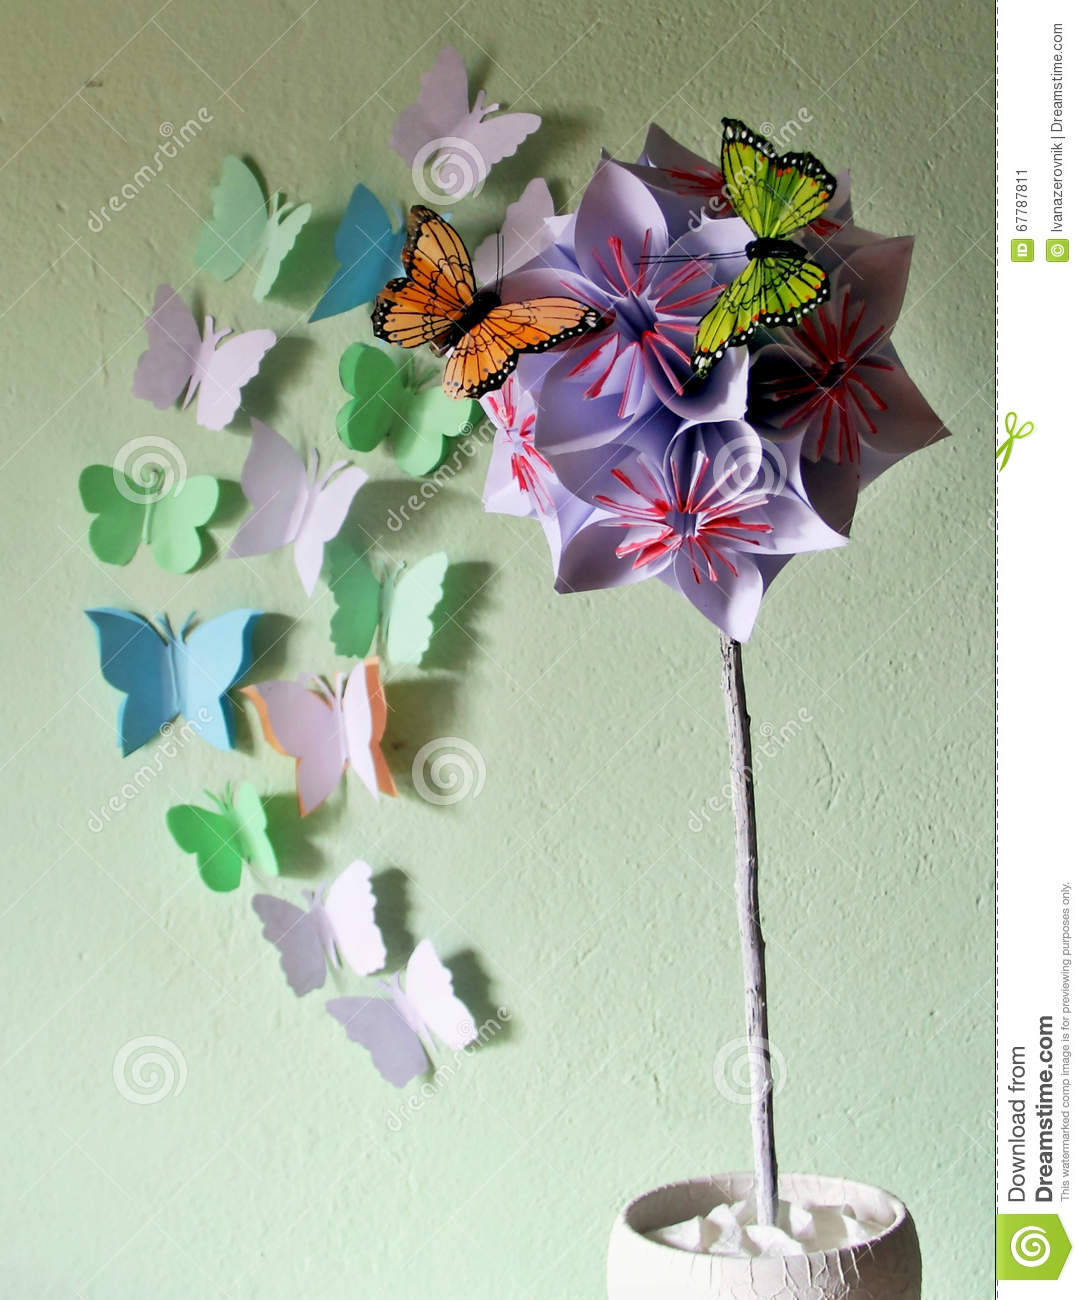 Origami flower ball stock image image of butterflies 67787811 origami flower ball mightylinksfo